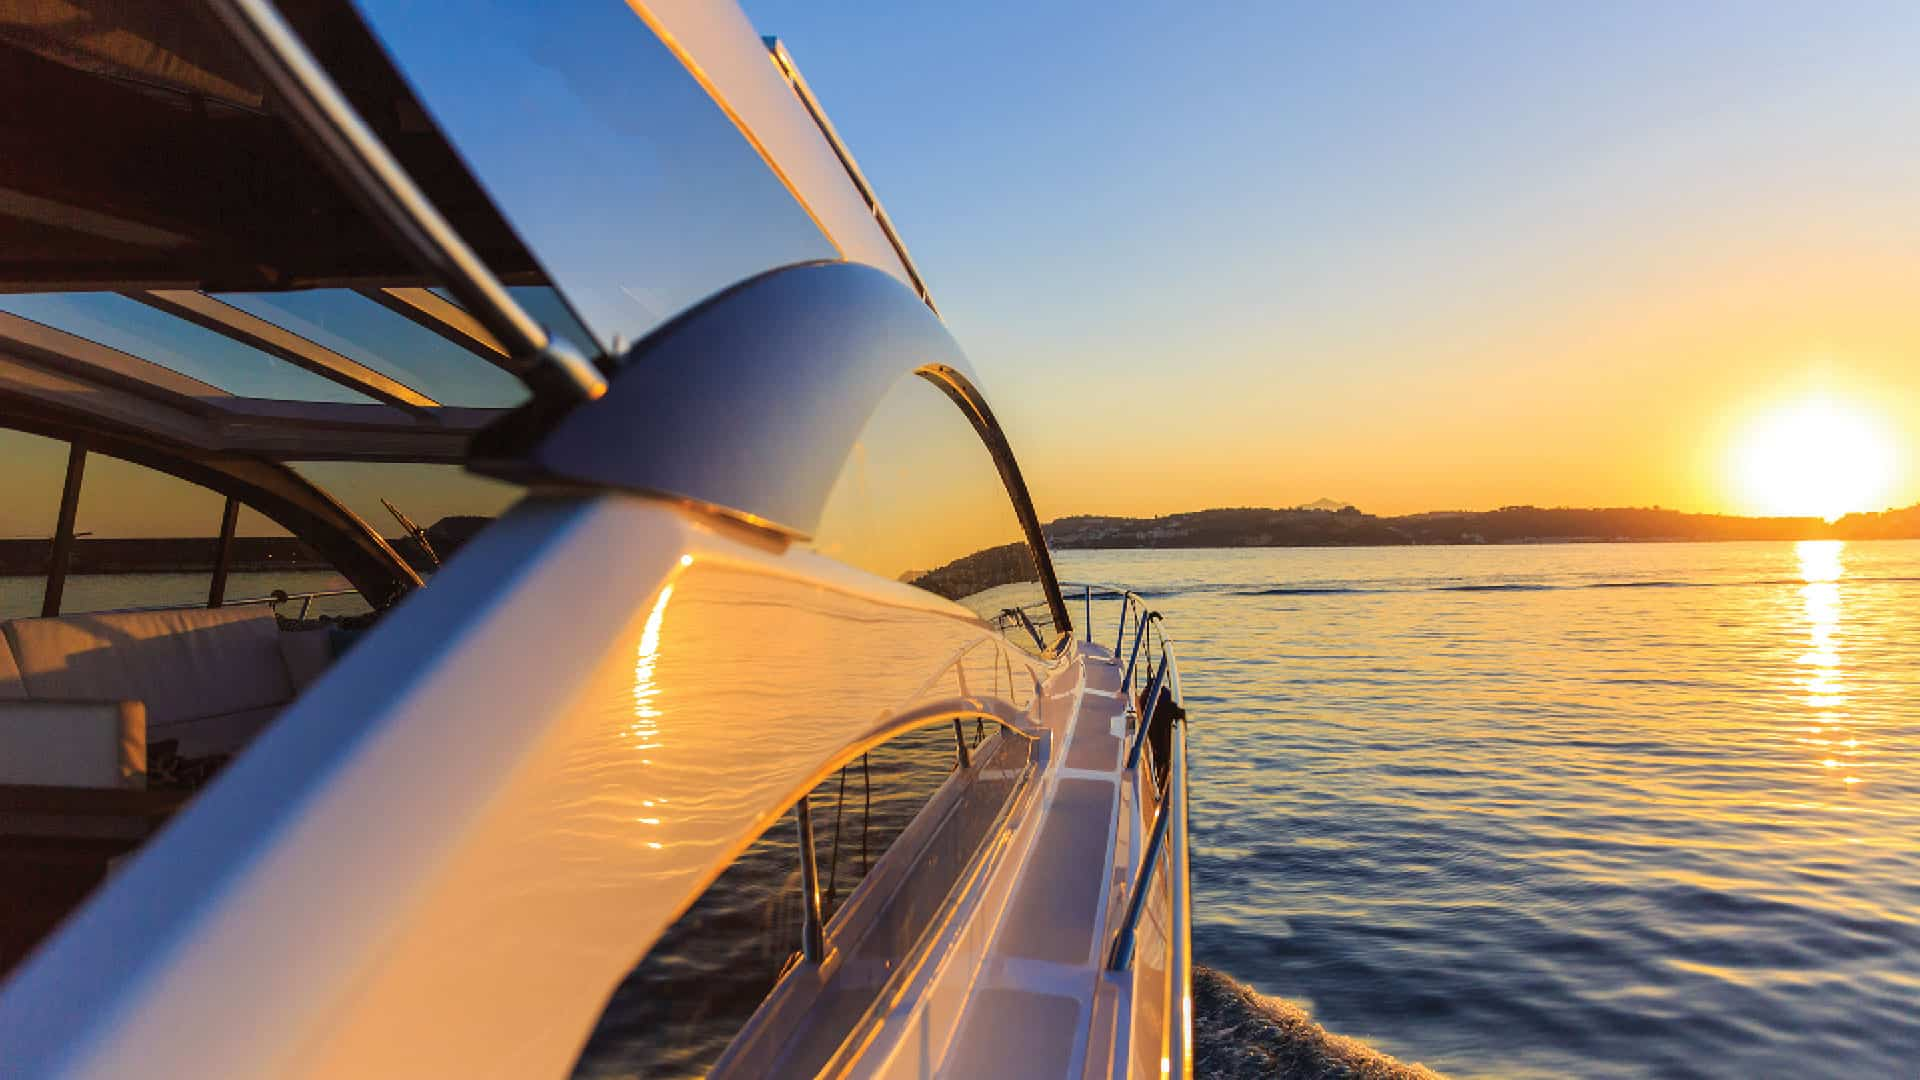 Superyacht cruising in the Whitsundays at sunset